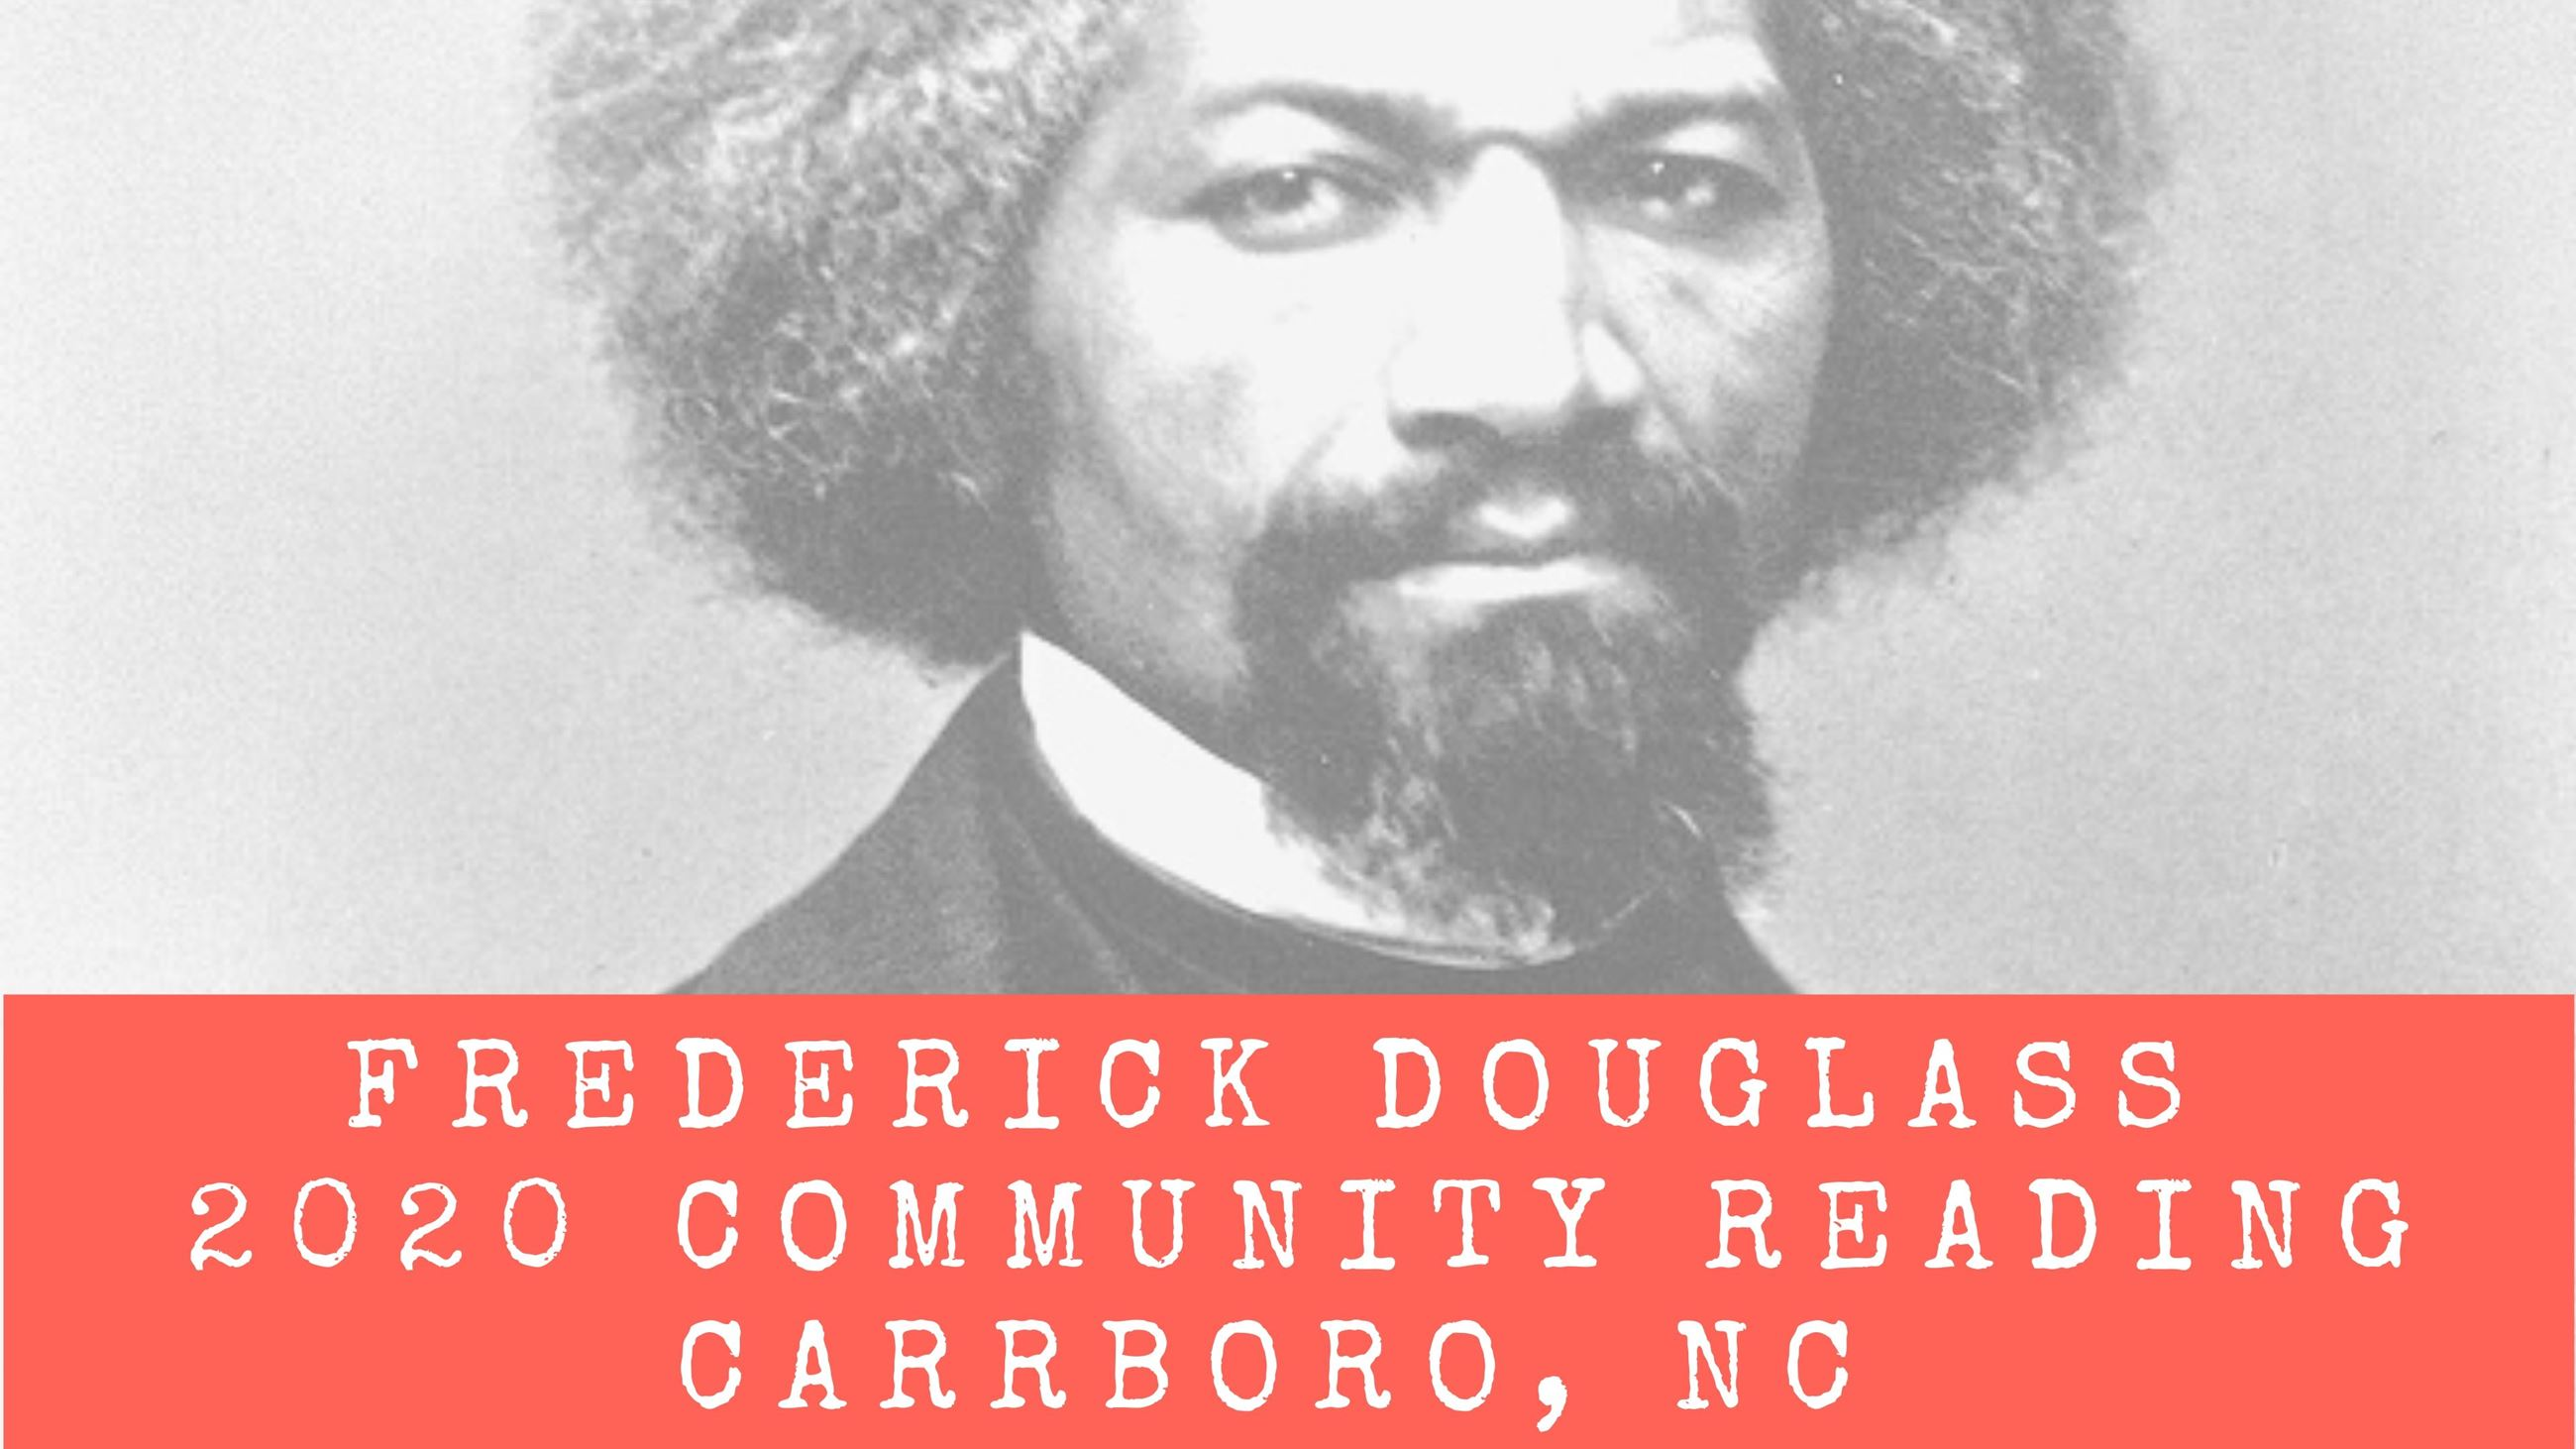 Frederick Douglass Reading 2020